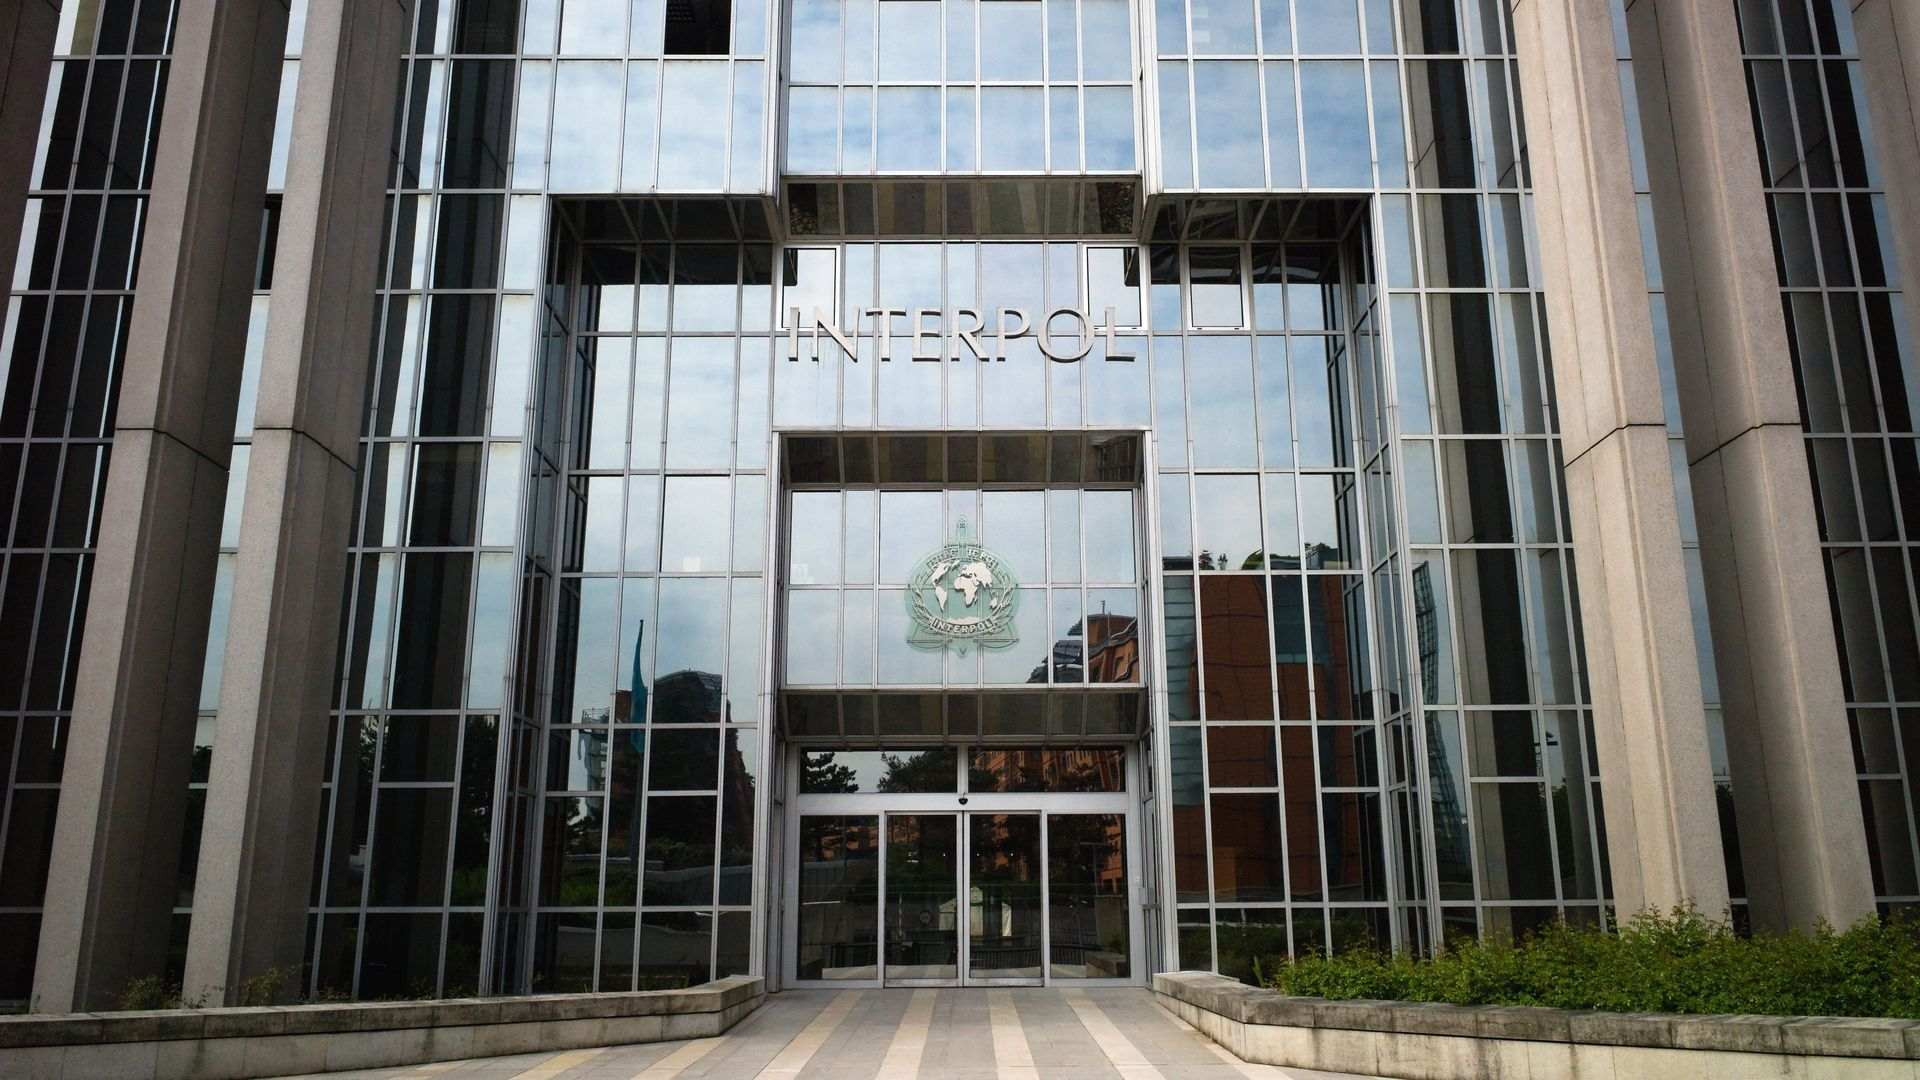 Interpol headquarters in Lyon, France